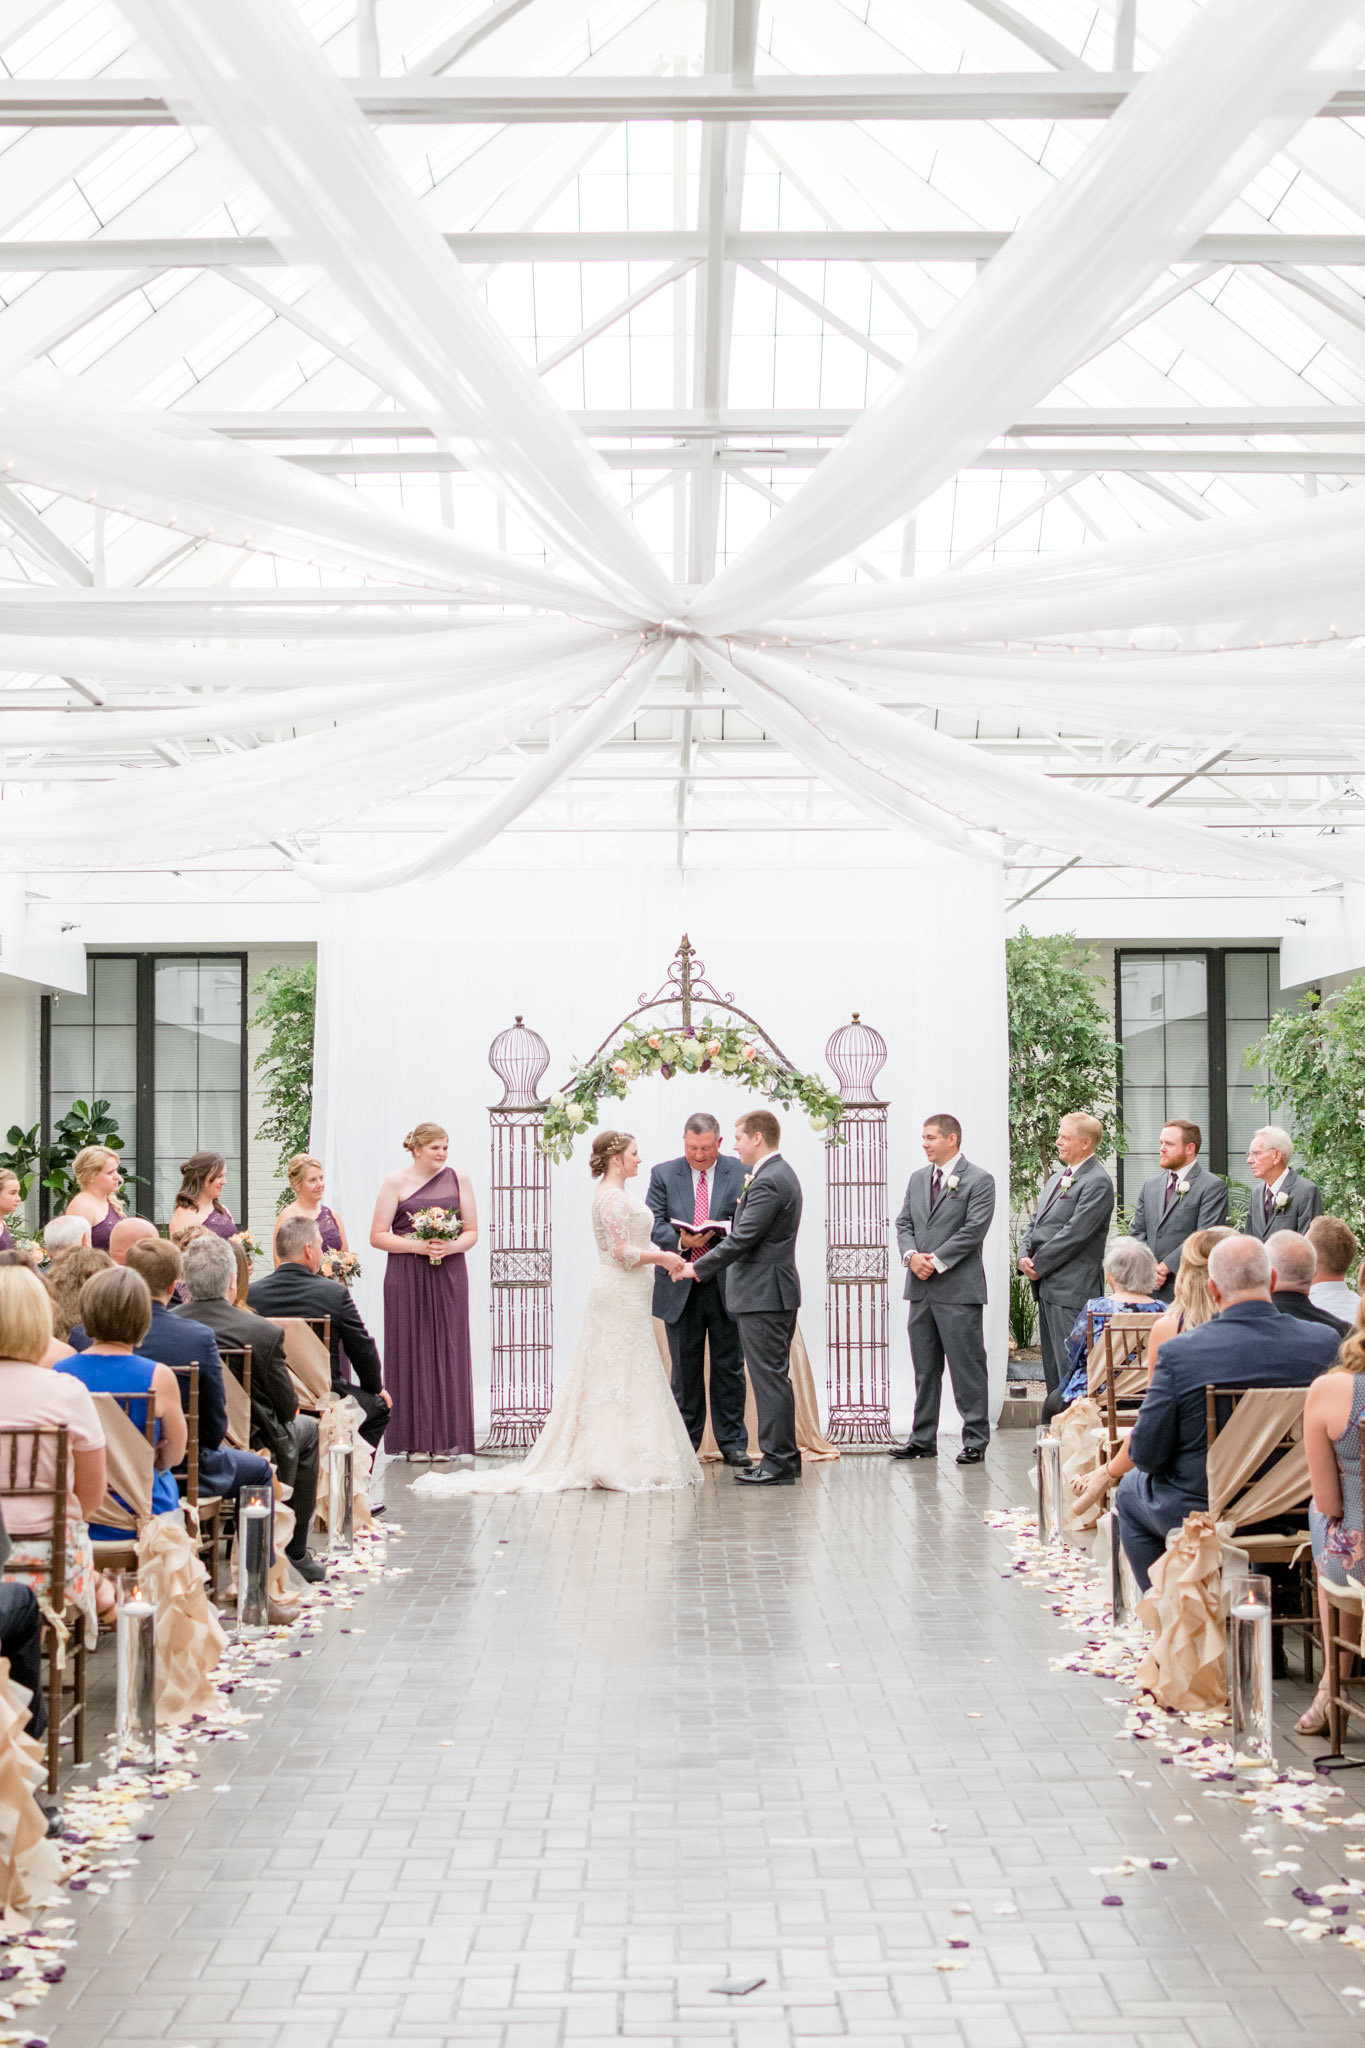 White and purple wedding ceremony